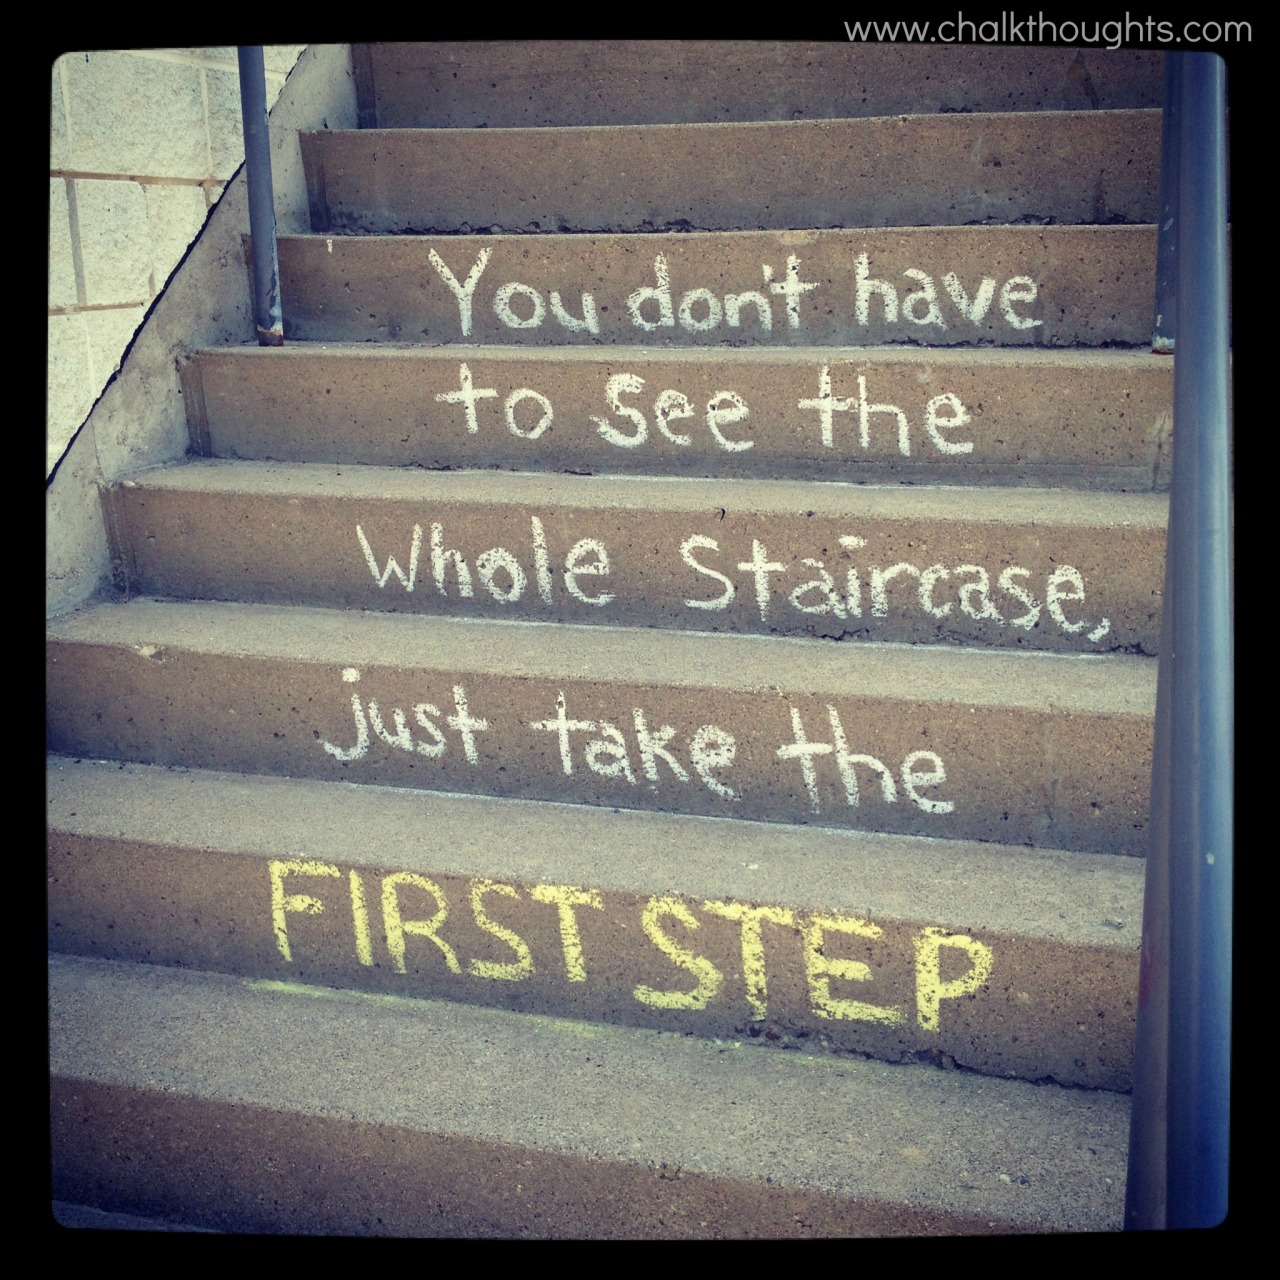 You don't have to see the whole staircase, just take the first step -Martin Luther King Jr Waterloo, Ontario Submitted: Chalkthoughts